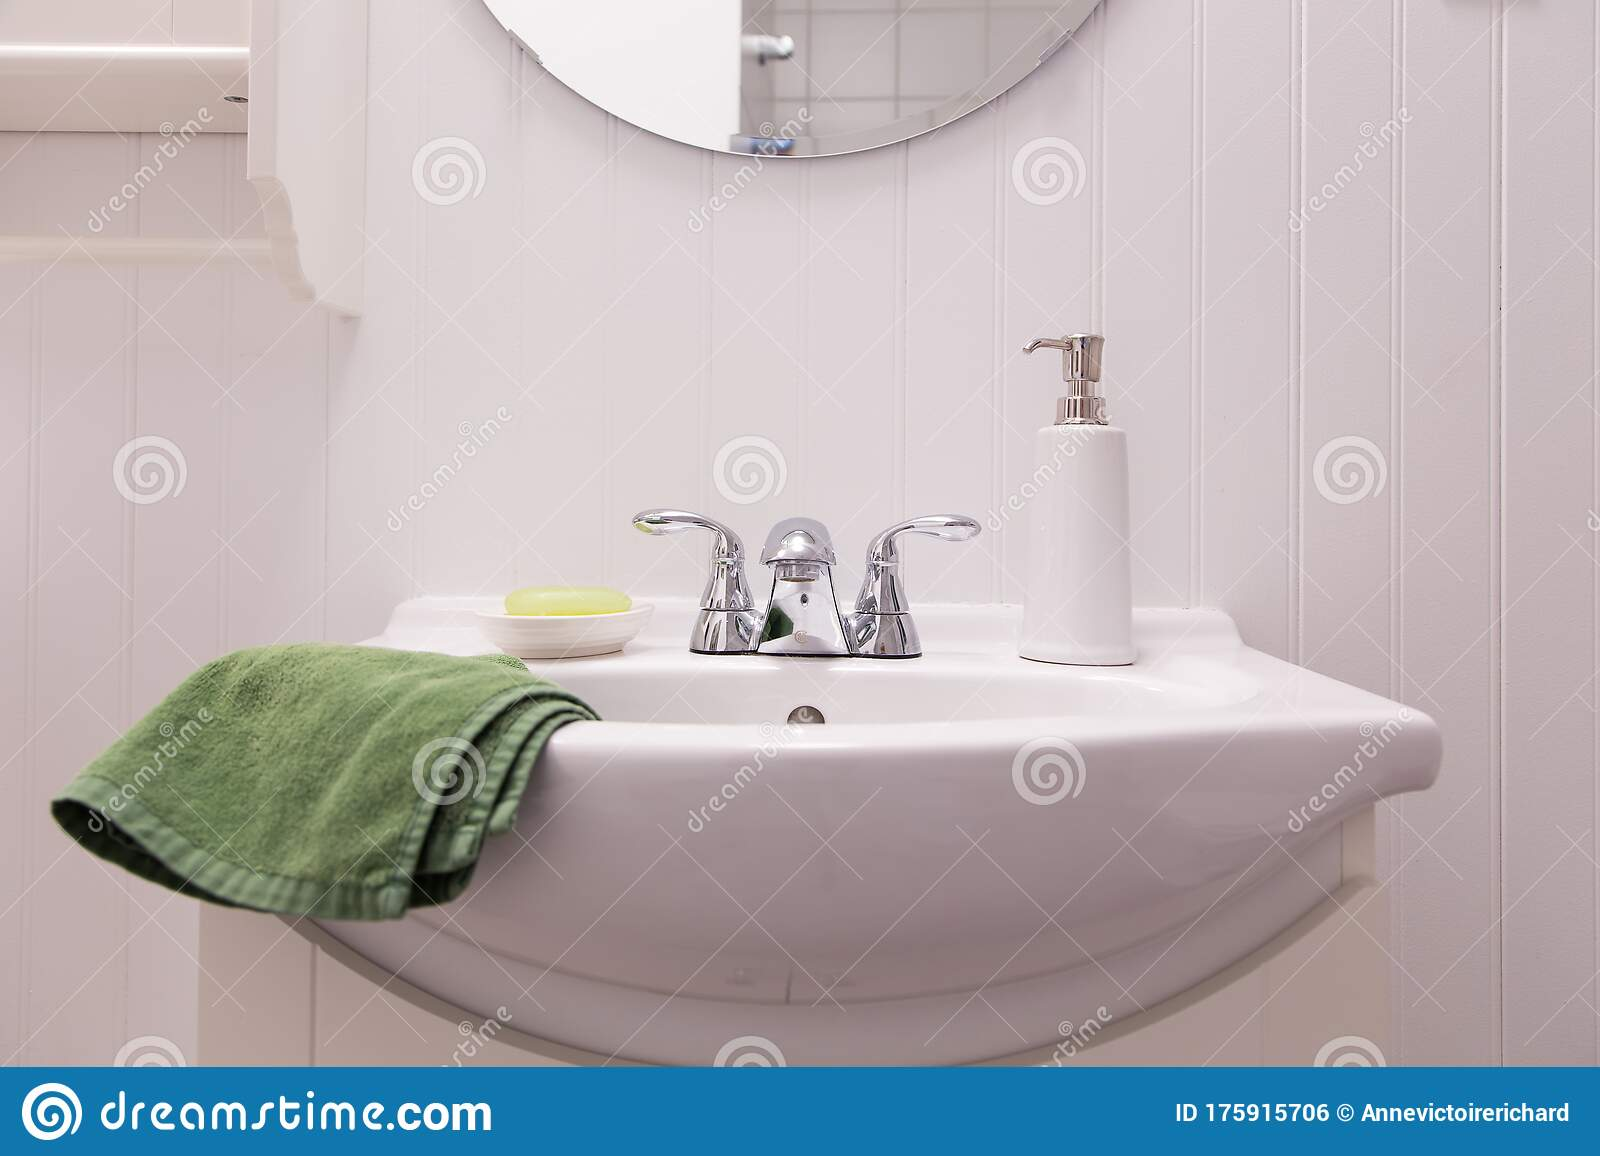 detail of all white bathroom with sink porcelain soap dispenser and green bar of soap in dish stock photo image of germs copy 175915706